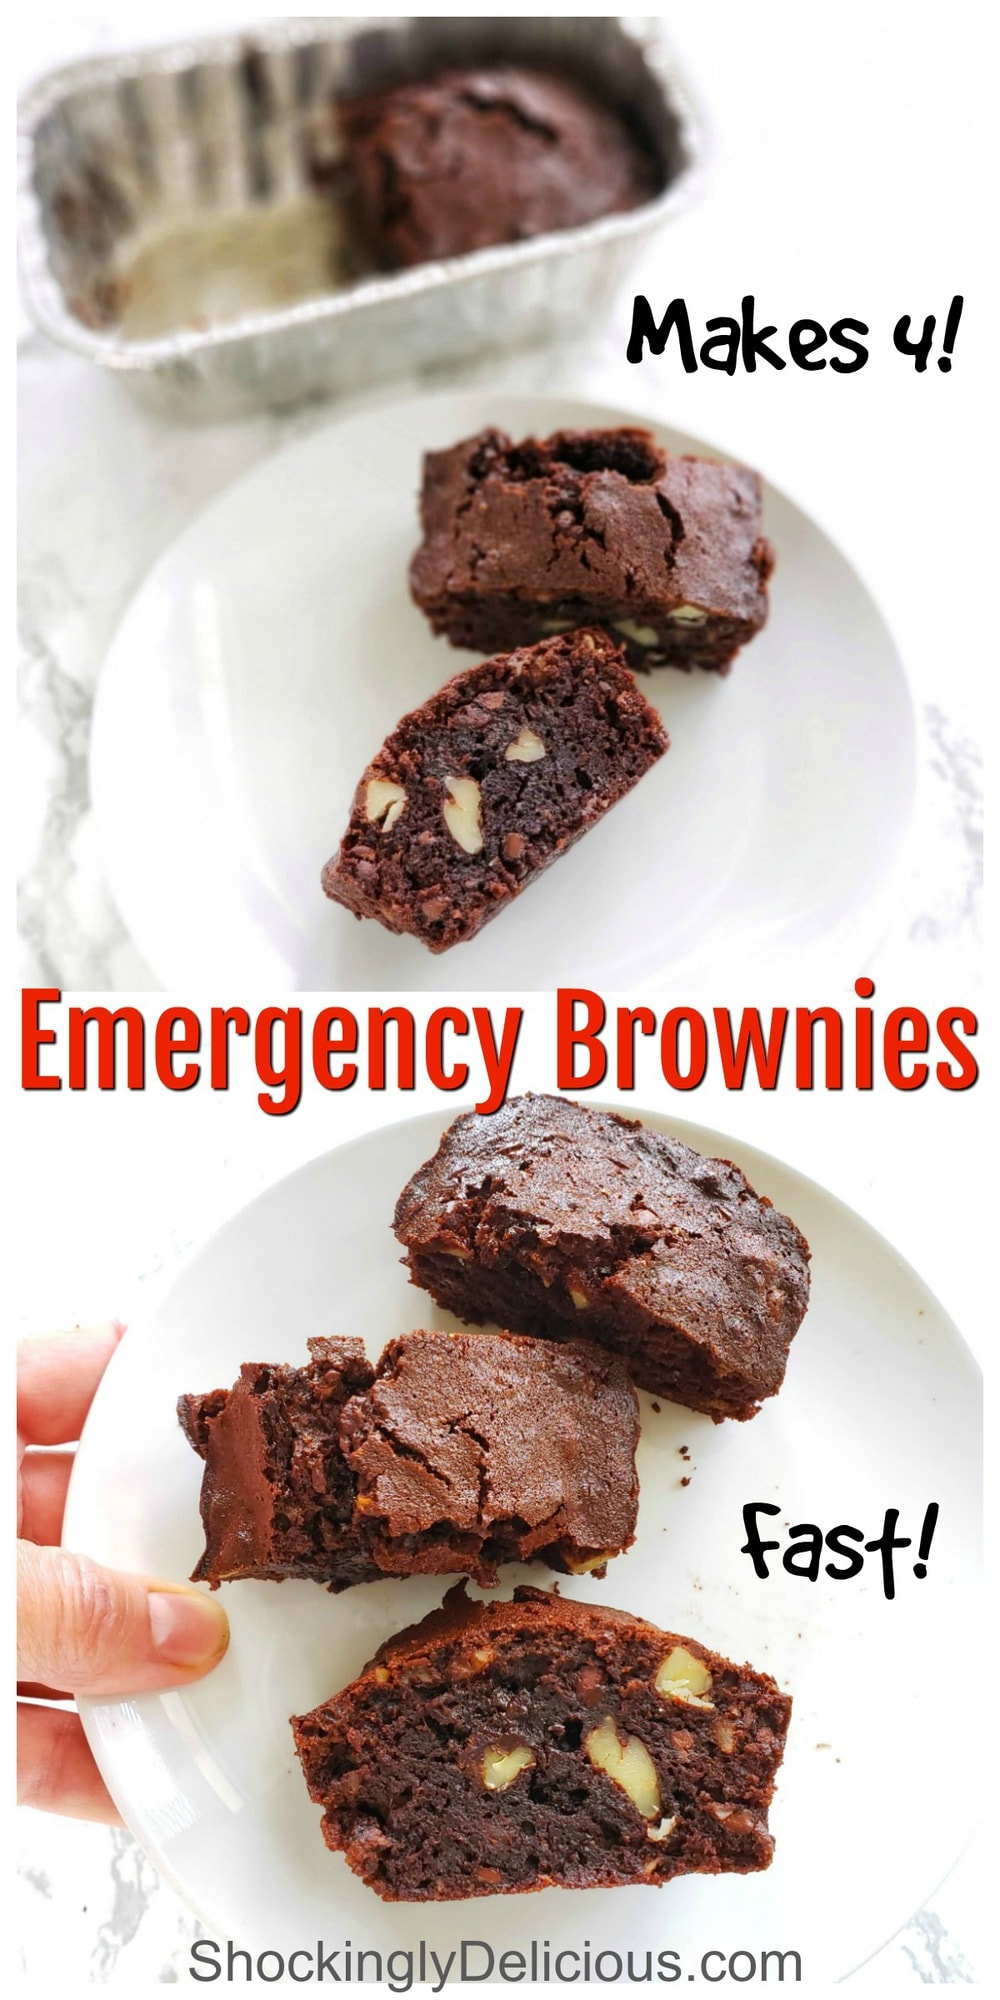 2 brownies on a white plate and 3 brownies on a white plate with a hand holding the plate with type overlaid